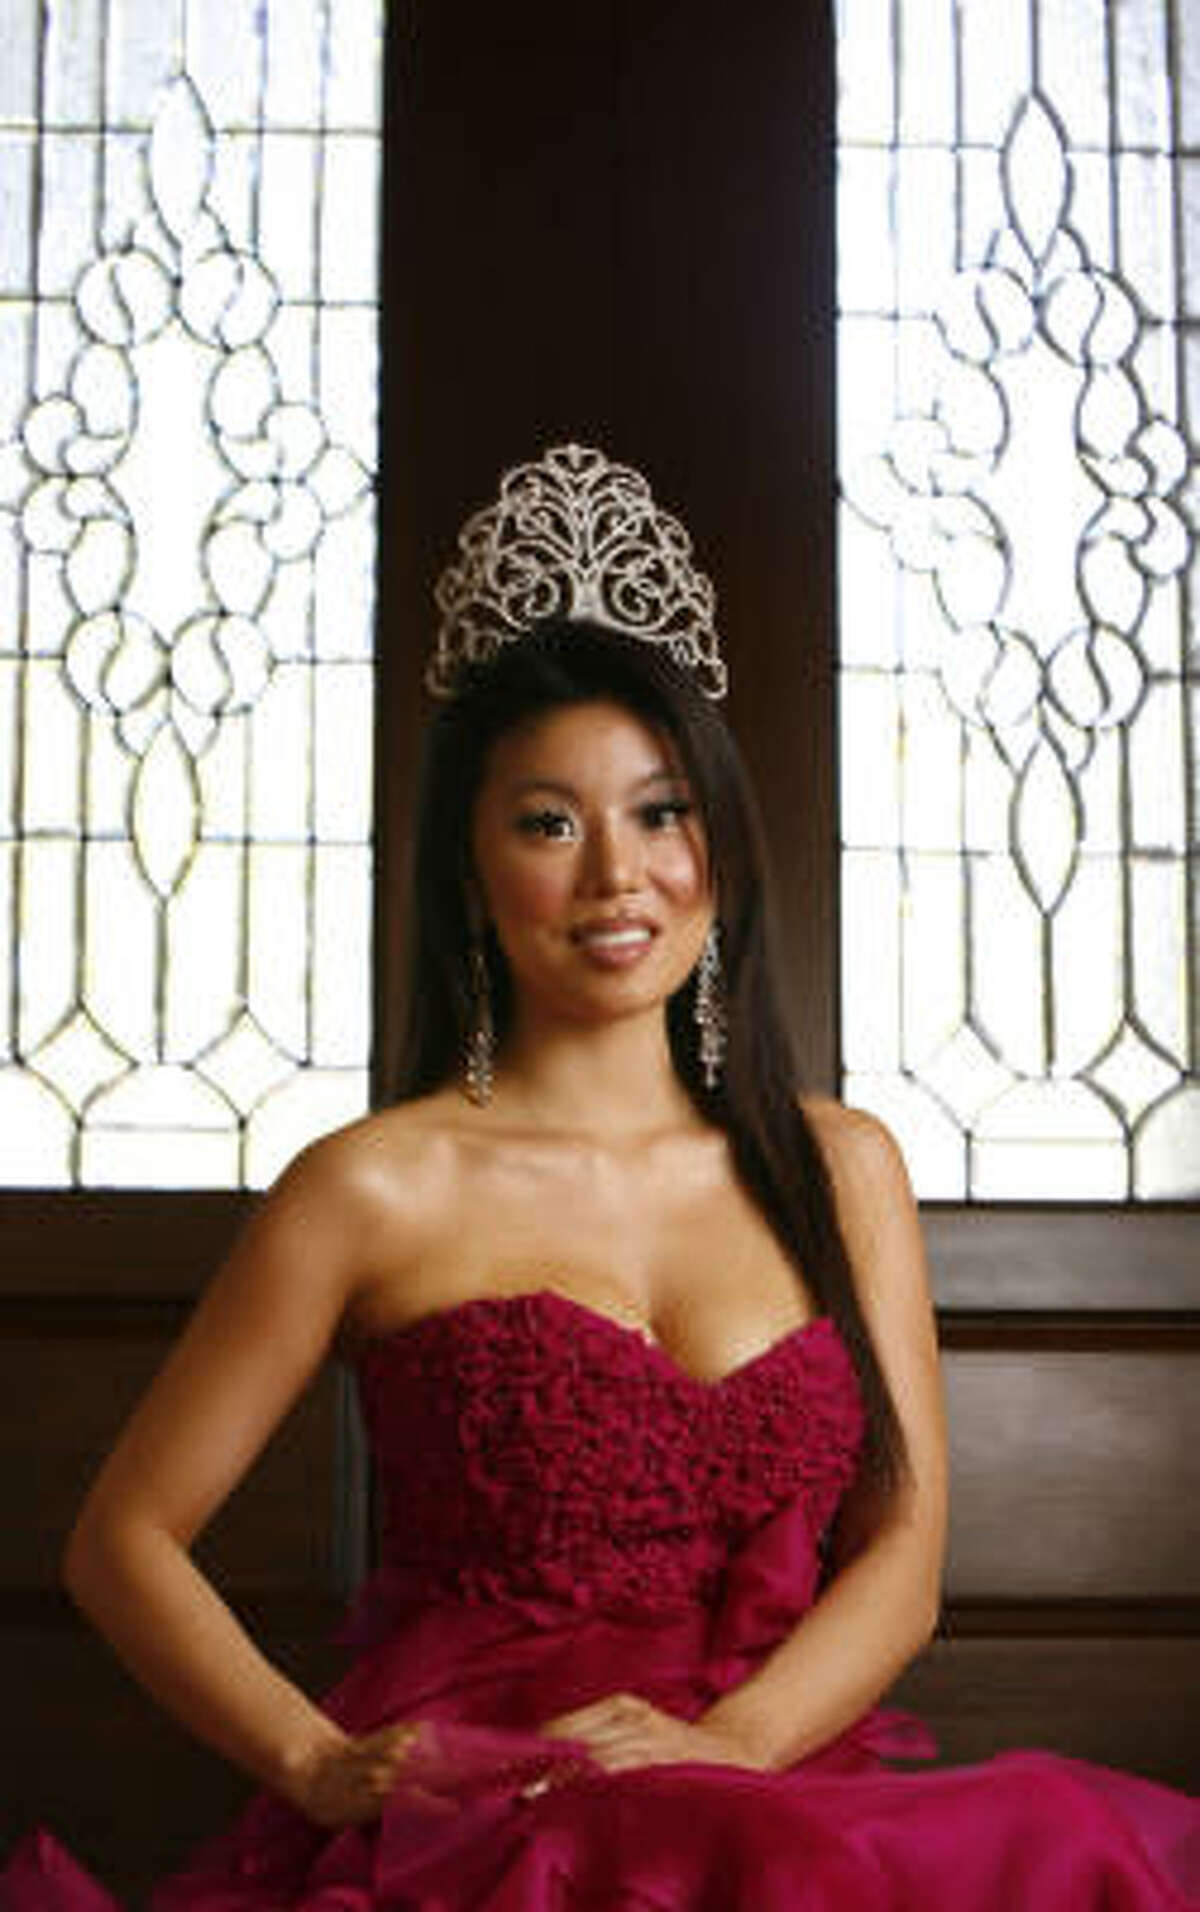 Yoo, who was crowned a few months ago, poses at her home in Katy.